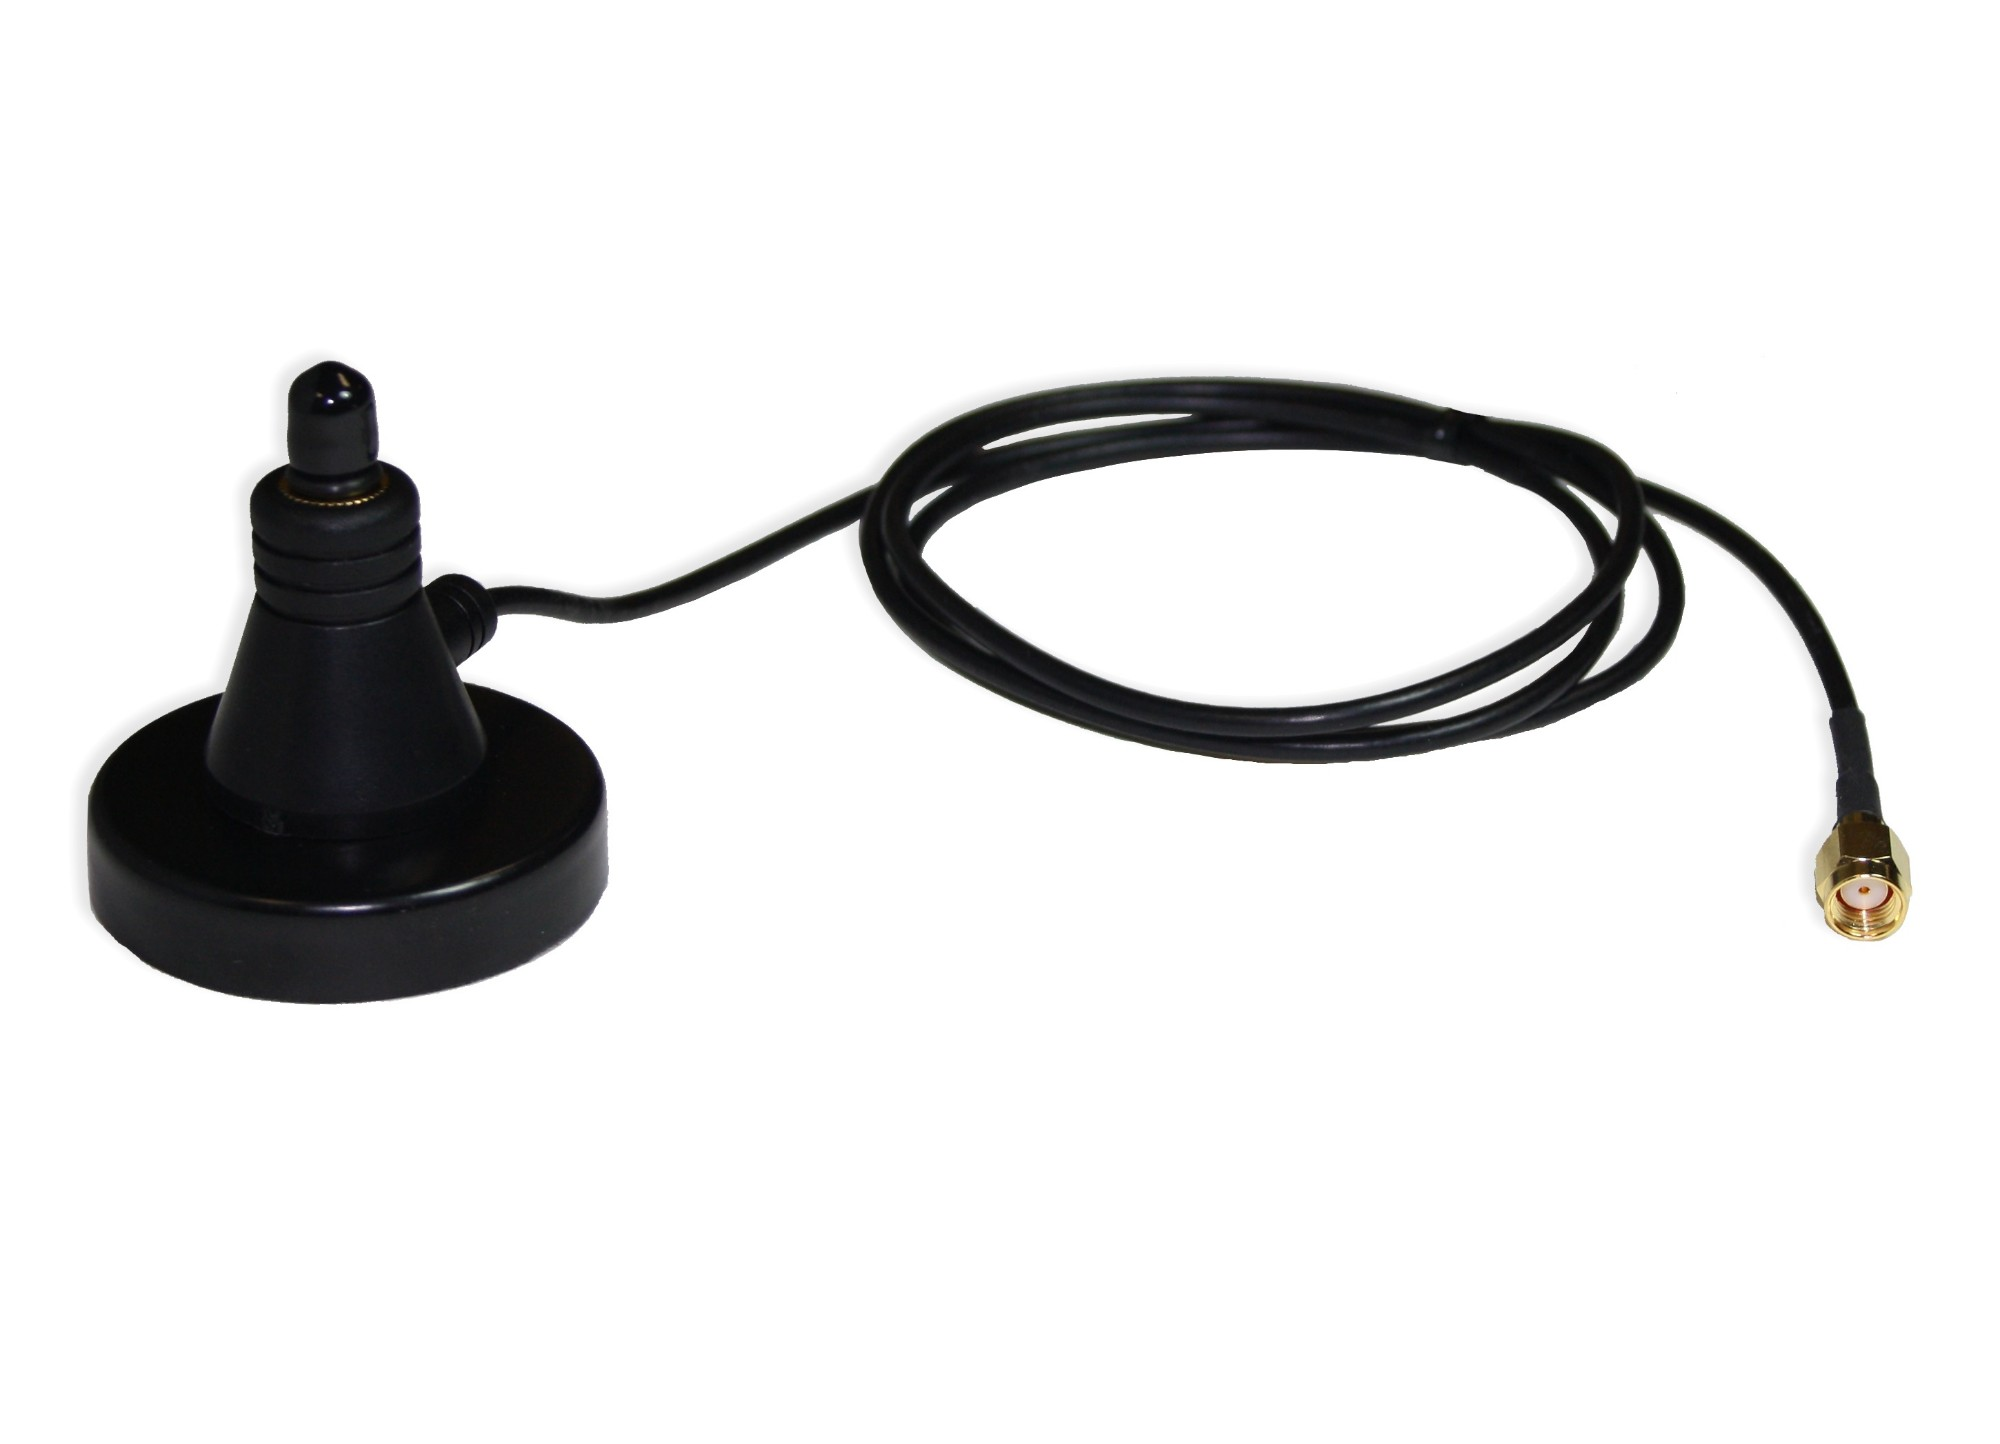 Draytek Magnetic Base & 1M Ext for WiFi Aerials Suitable for ANT-1005, ANT-1207 and ANT-2520